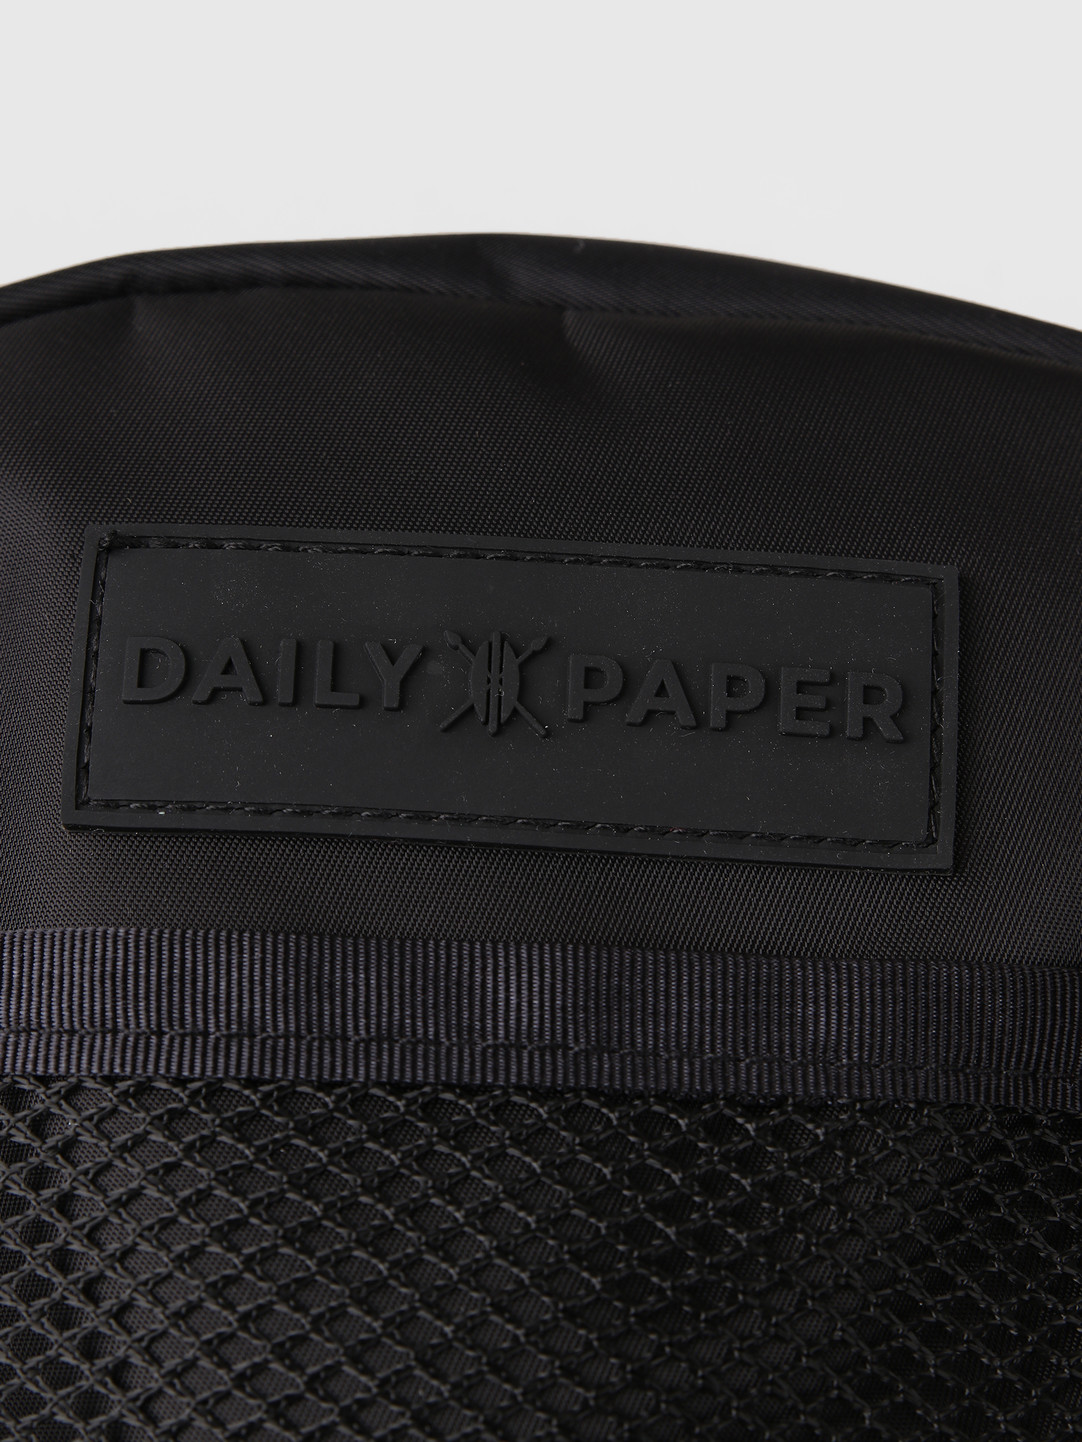 Daily Paper Daily Paper Shoulder Bag Black 19R1AC01-01